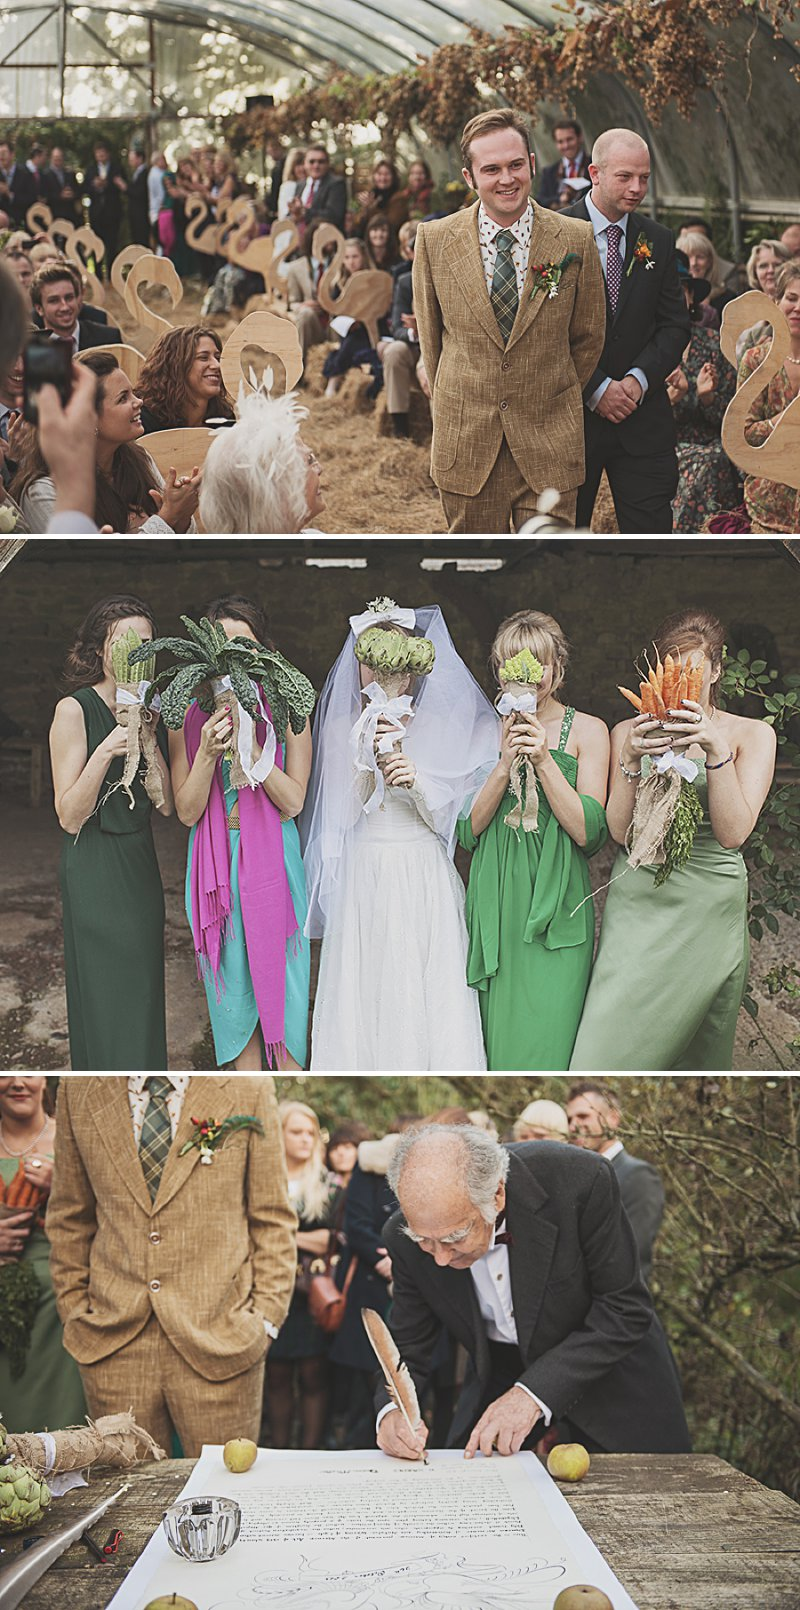 A DIY Wedding with homemade flowers, flamingo art, a polytunnel ceremony, apples, pumpkins, vintage dress and suit and vegetable bouquets.  Apple sharing ceremony at home with photography by Camilla Rosa_0001